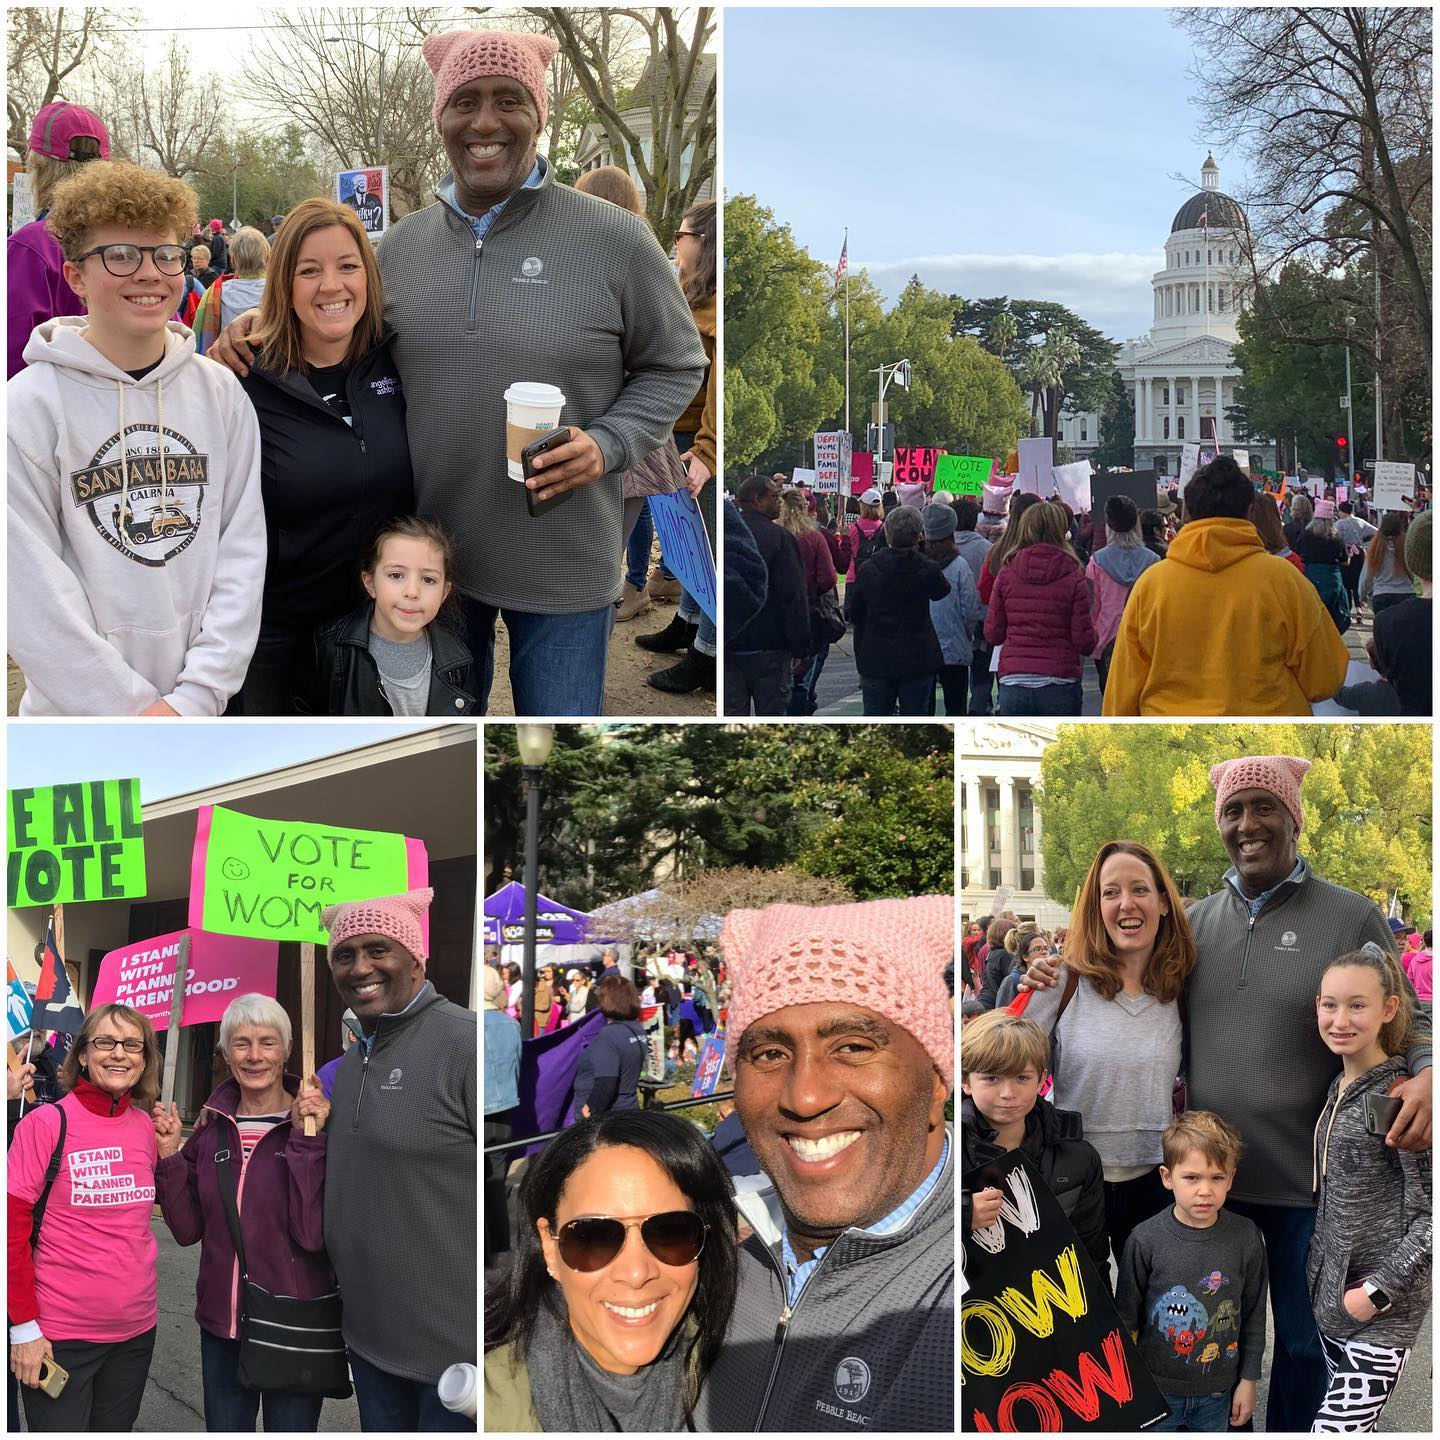 I took part in another amazing Women's March in Sacramento.  It was great to see so many people marching in solidarity to end violence against women.